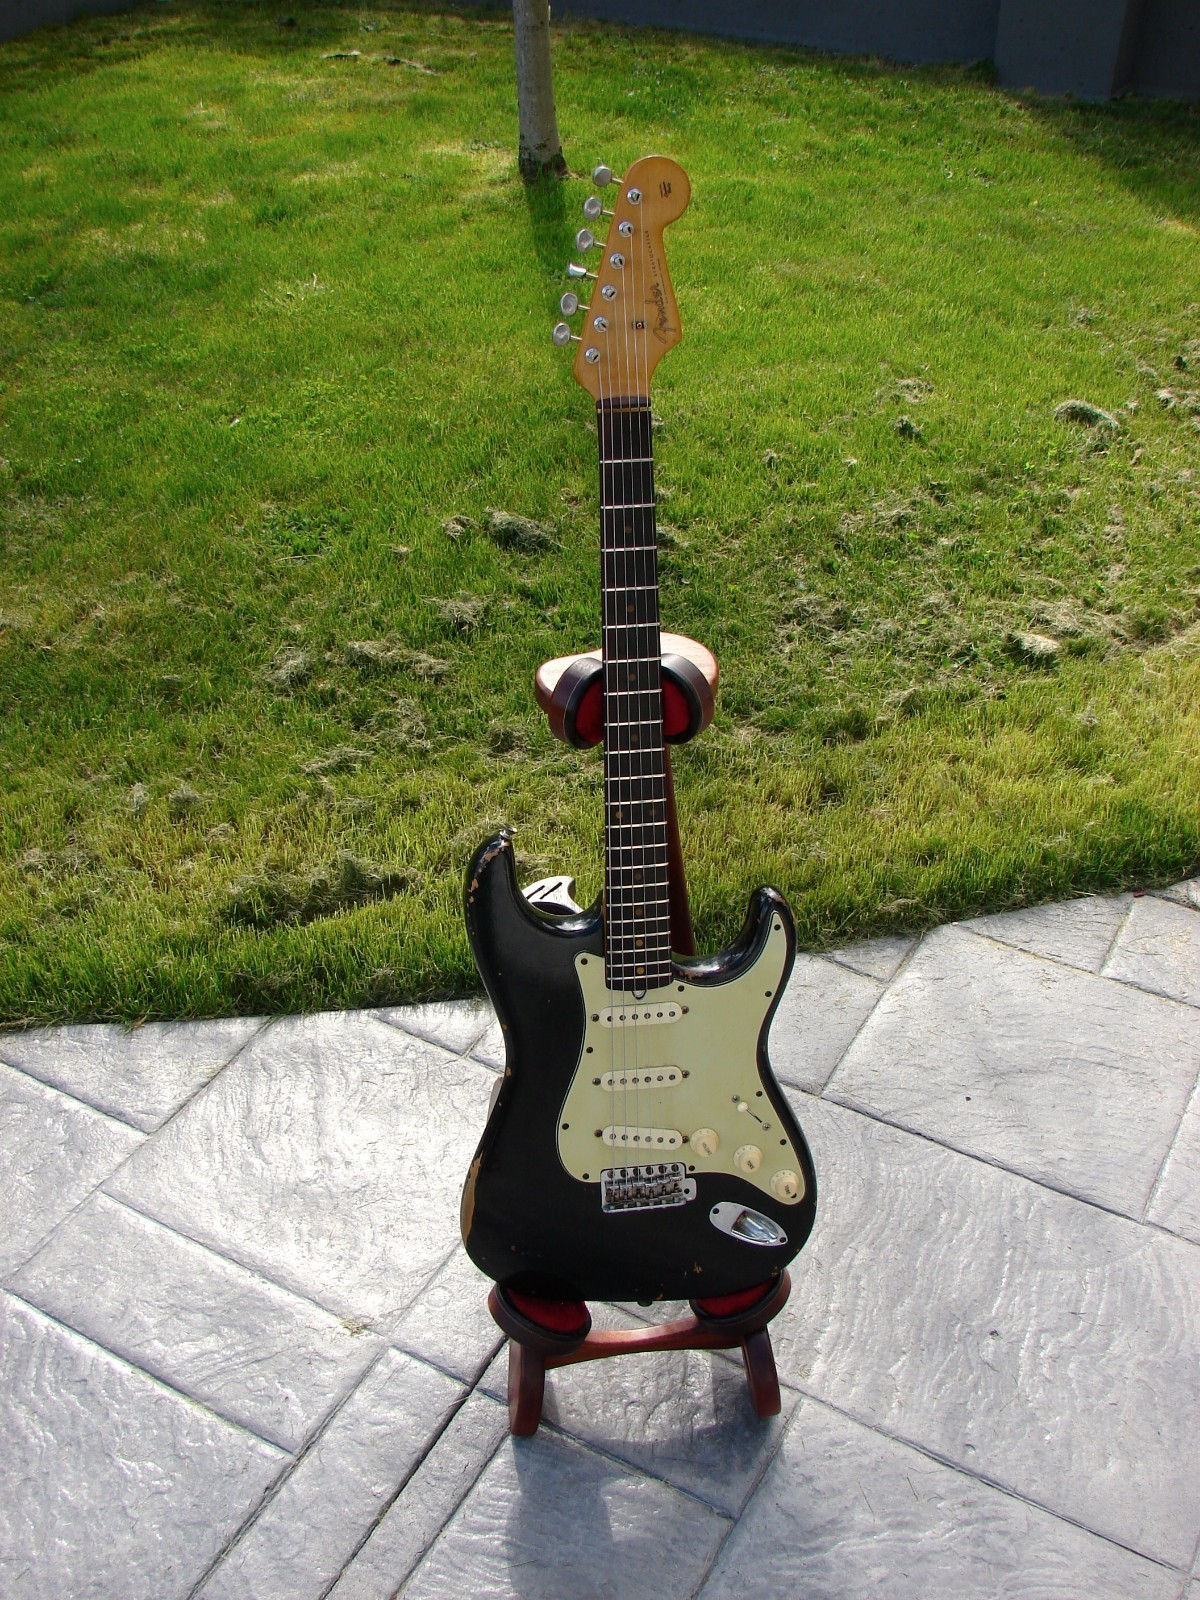 Vintage Guitarz May 2013 1965 Gibson Es345 Wiring Repair Chicago Fret Works Guitar Canada Fender Stratocaster 1960